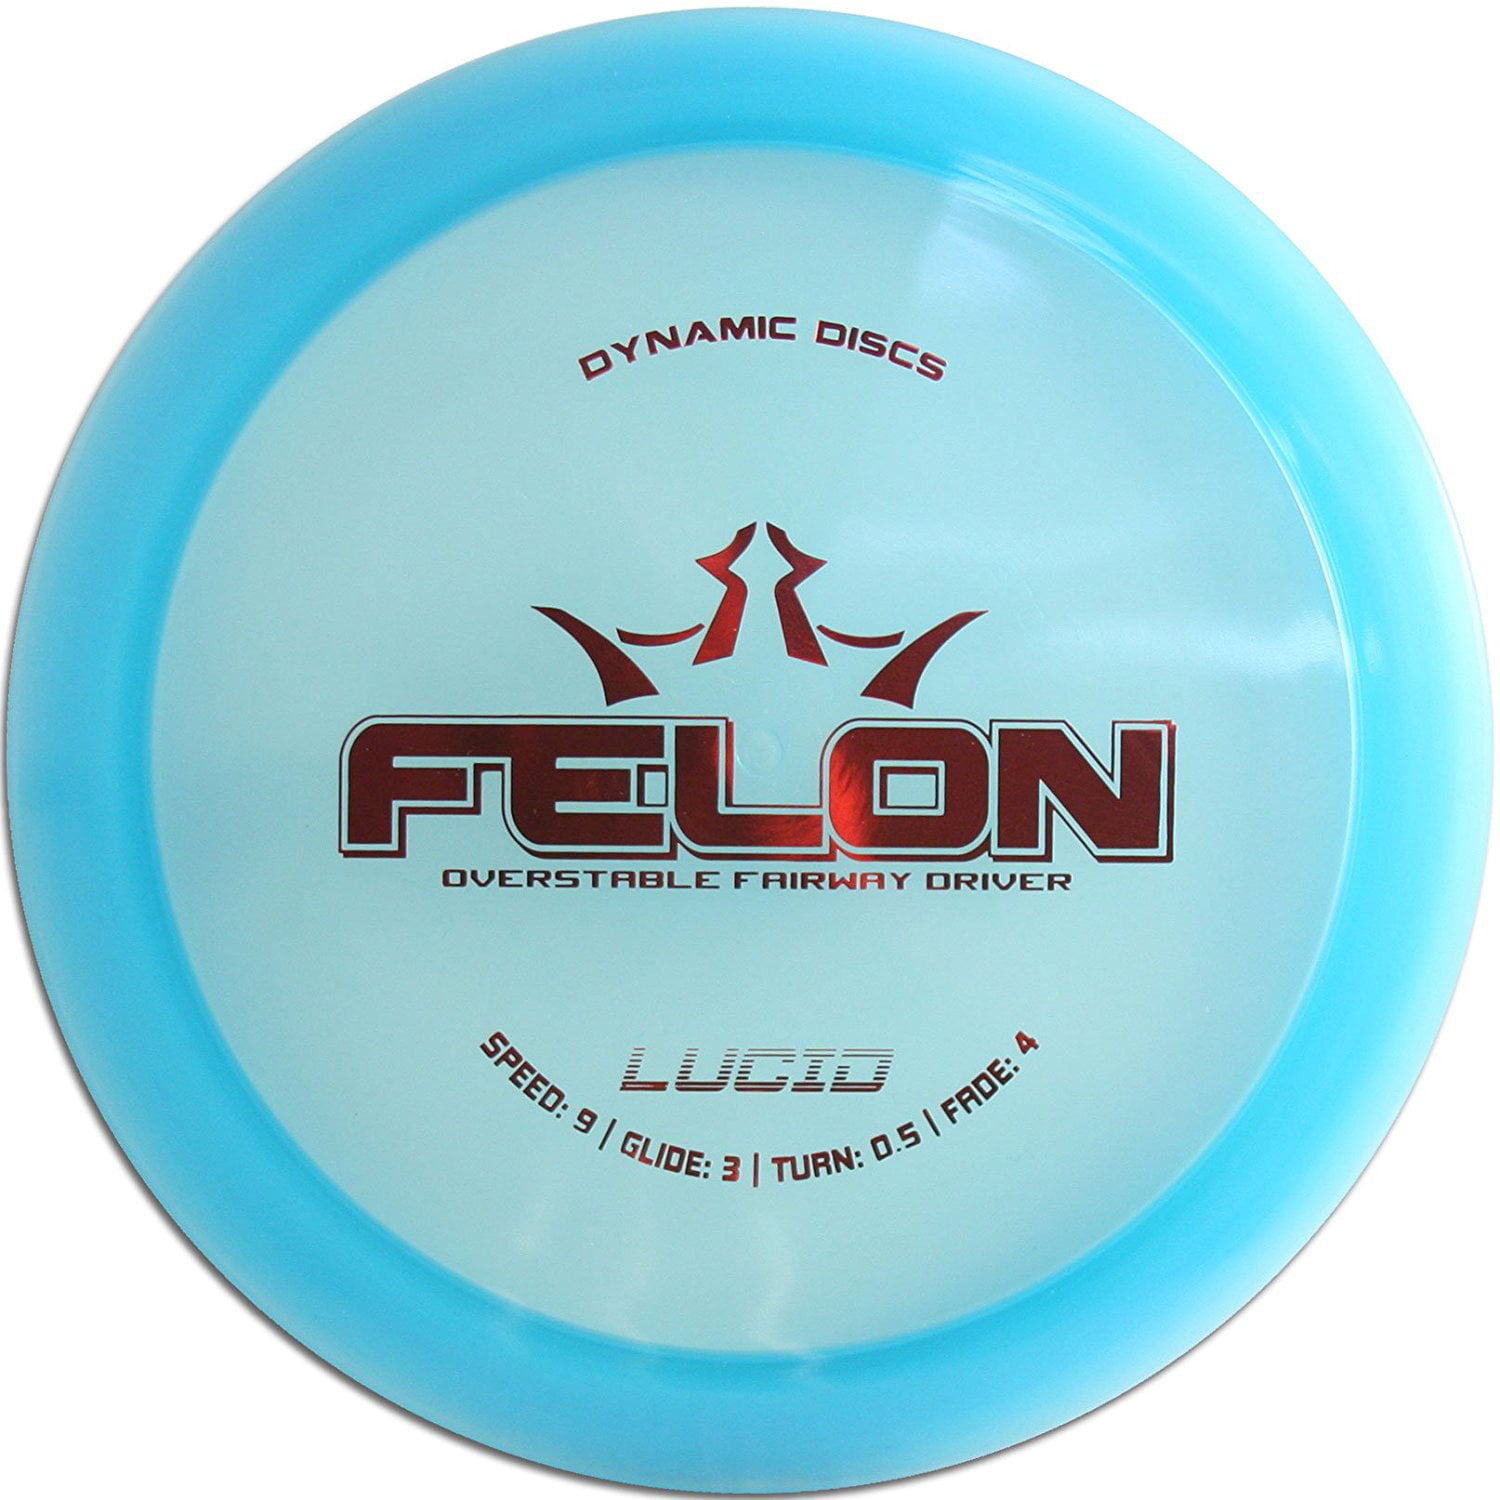 Lucid Felon Disc Golf Fairway Driver 170-176g, Speed: 9 Glide: 3 Turn: 0.5 Fade: 4 By... by